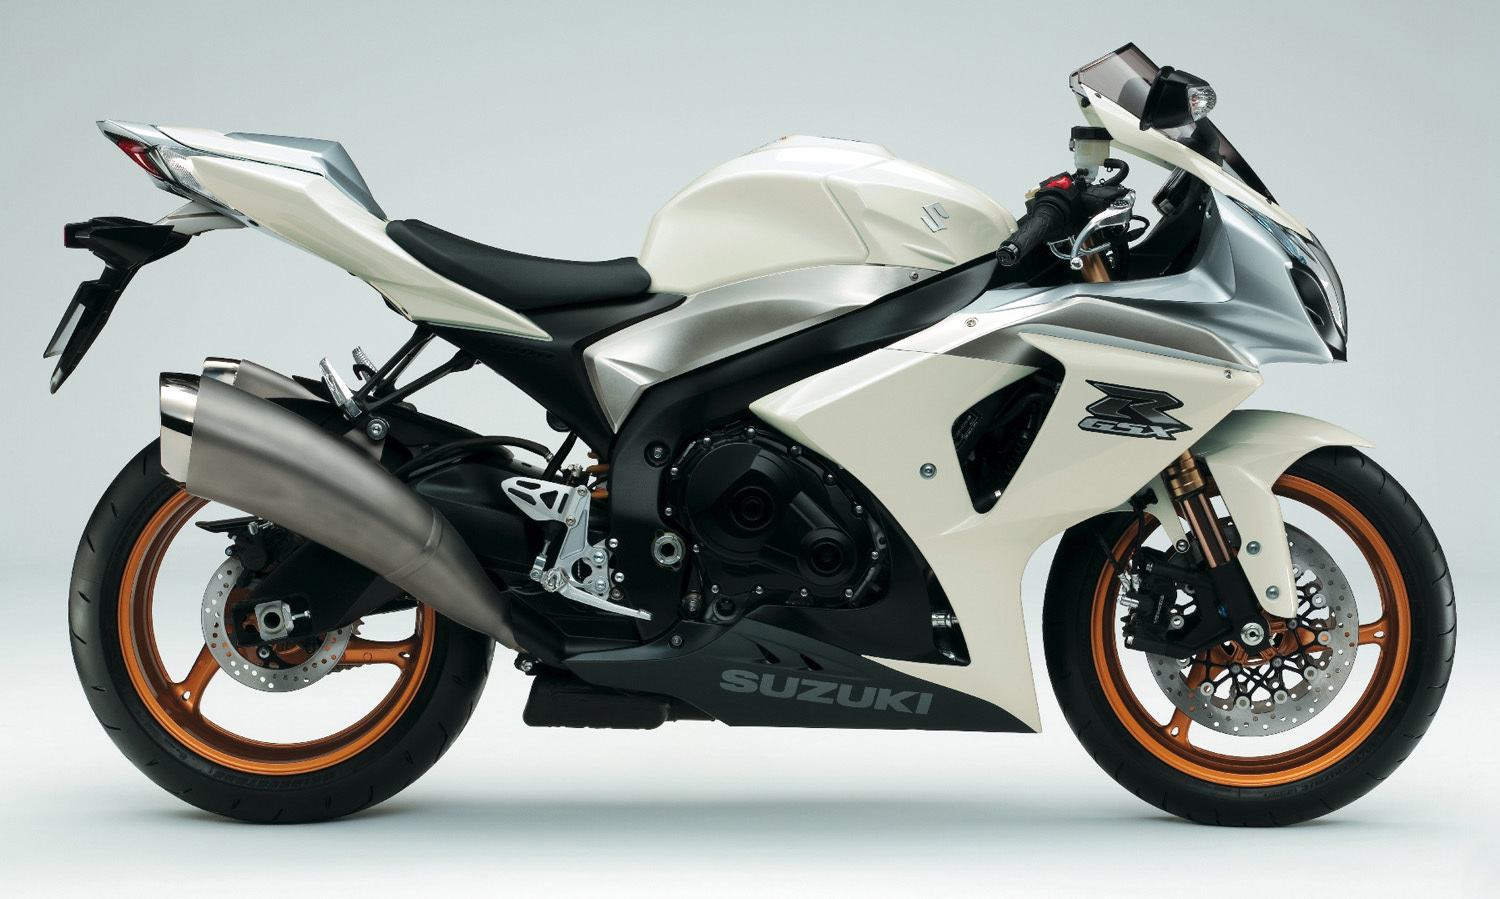 New Cars & Bikes Suzuki gsxr 750 k9 Wallpaper